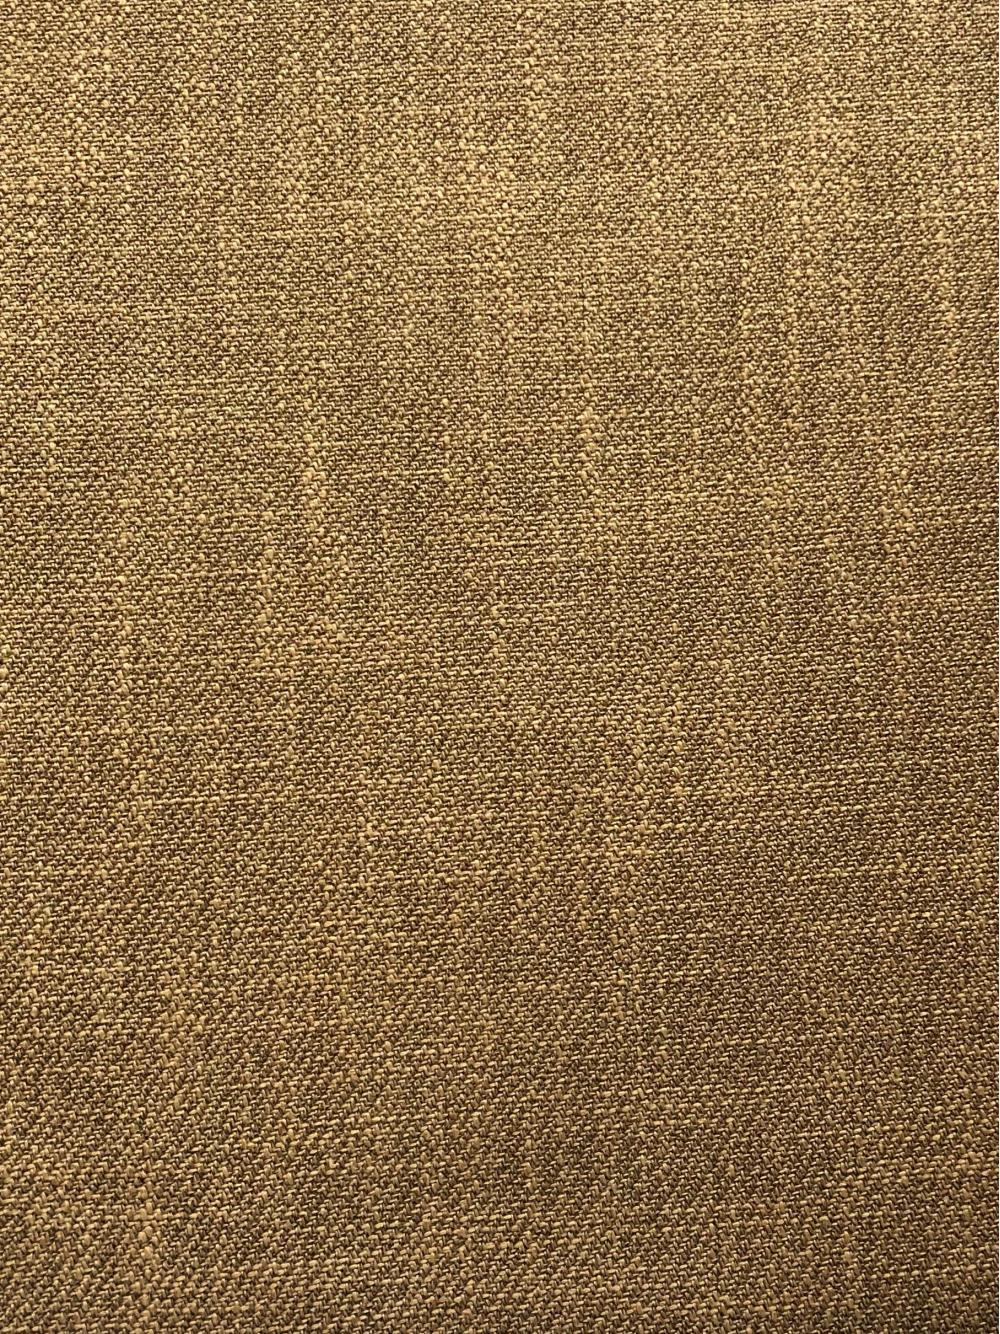 Simulated Linen Polyester Fabric For Sofa Cushions